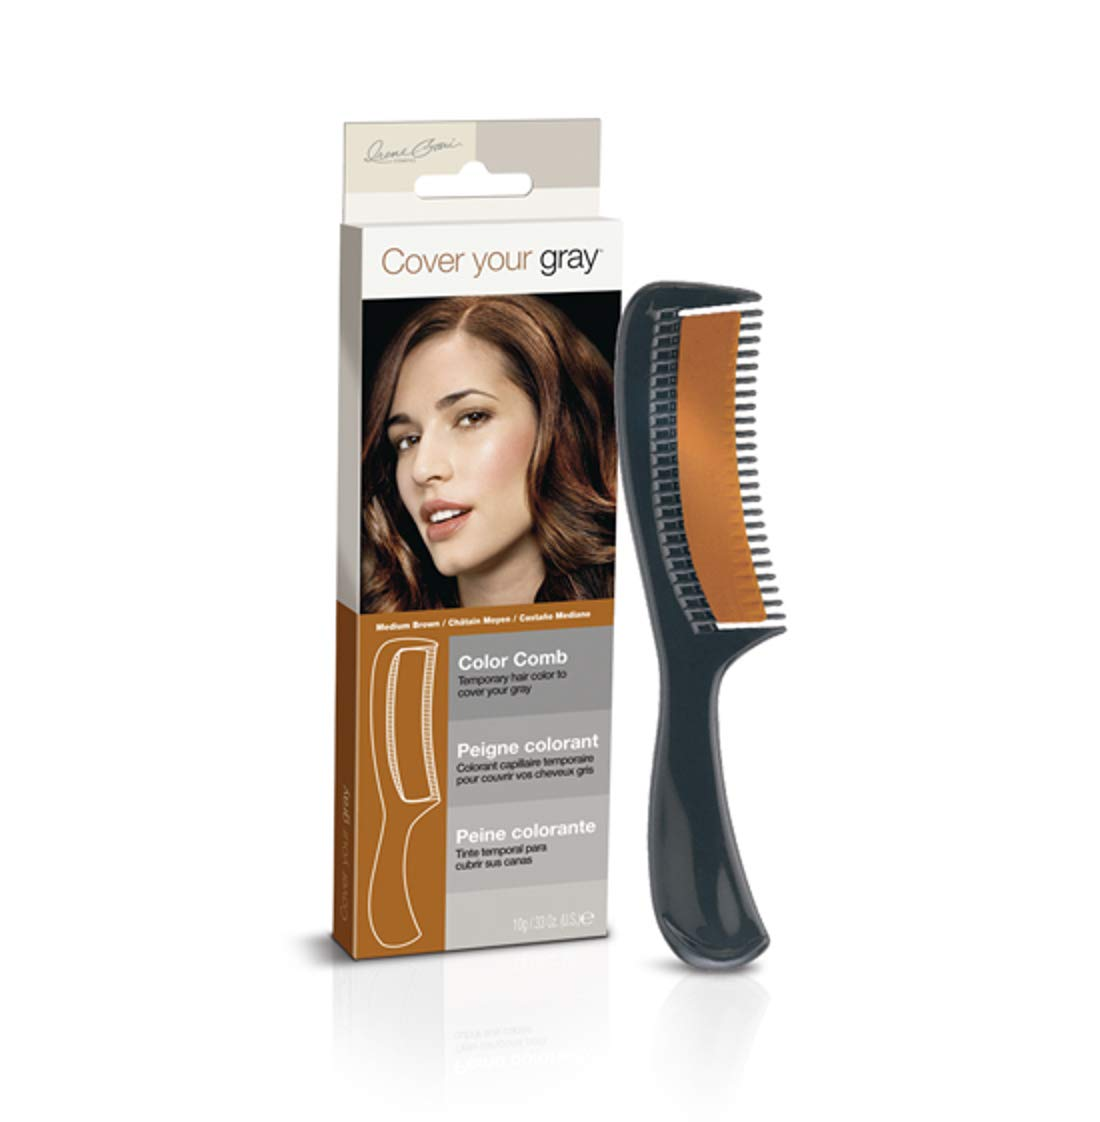 Cover Your Gray Color Comb - Medium Brown (Pack of 6)